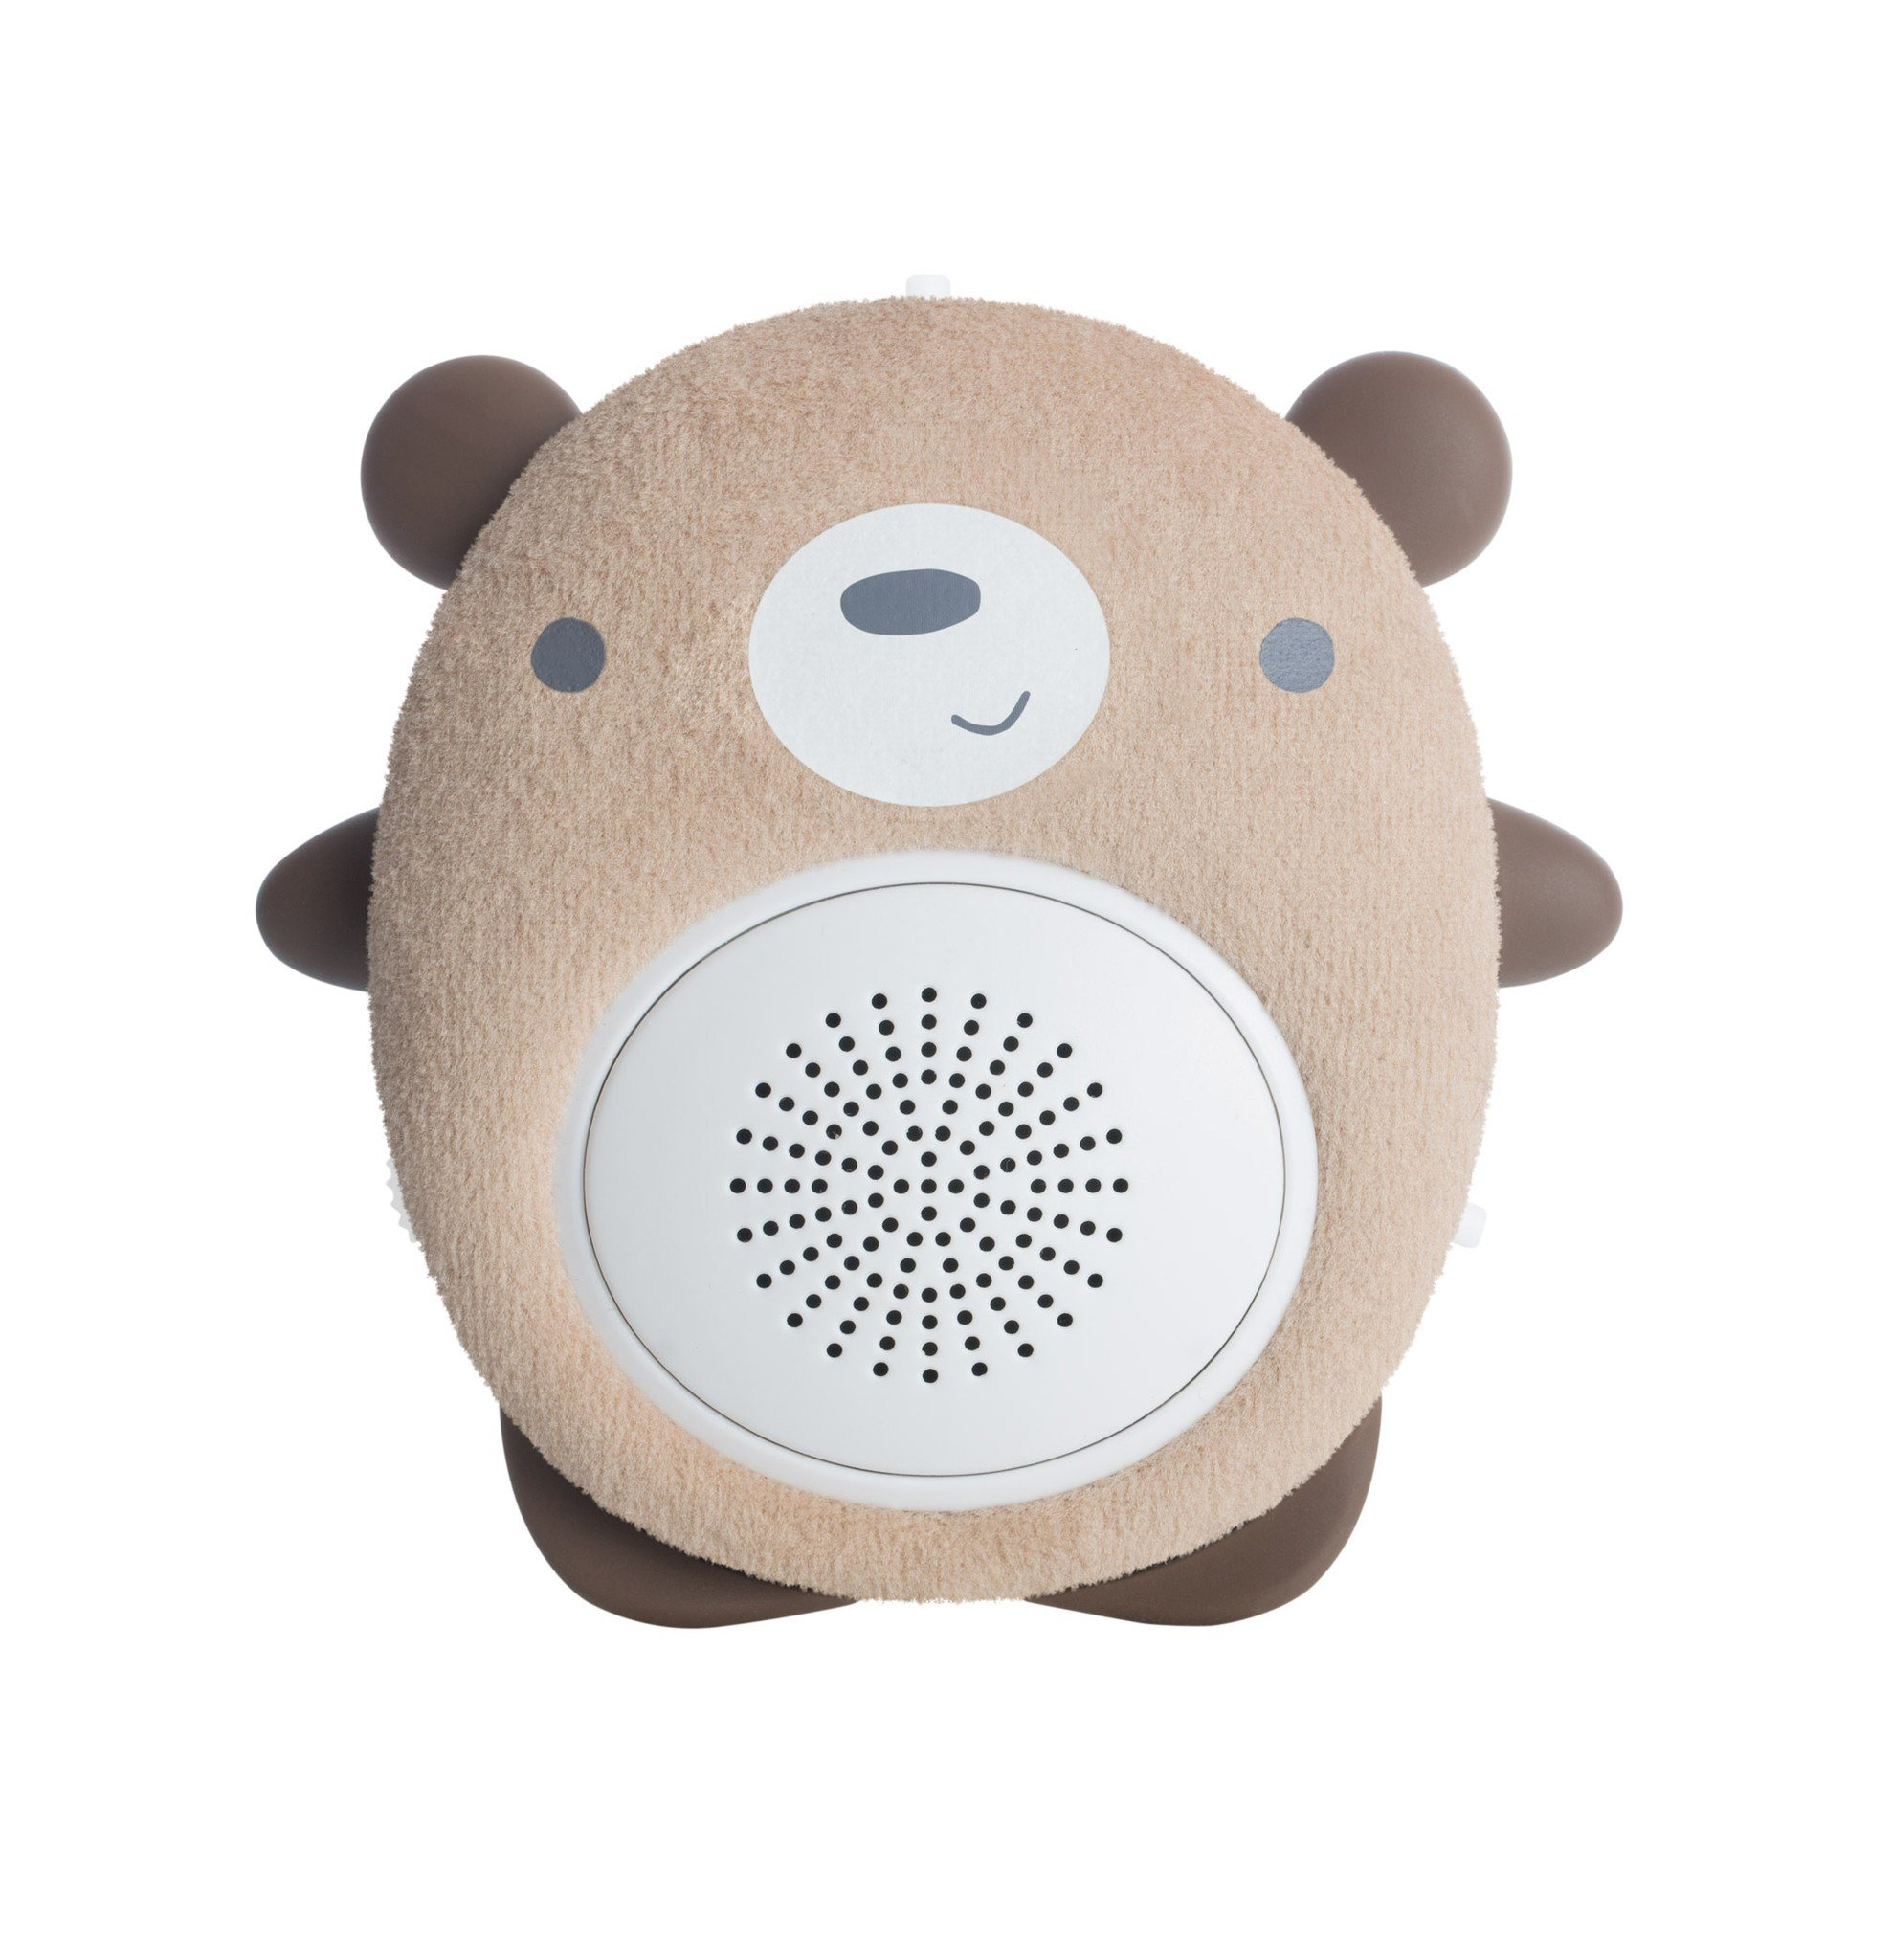 SoundBub by WavHello, White Noise Machine and Bluetooth Speaker, Portable and Rechargeable Baby Sleep Sound Soother | Benji the Bear, Brown